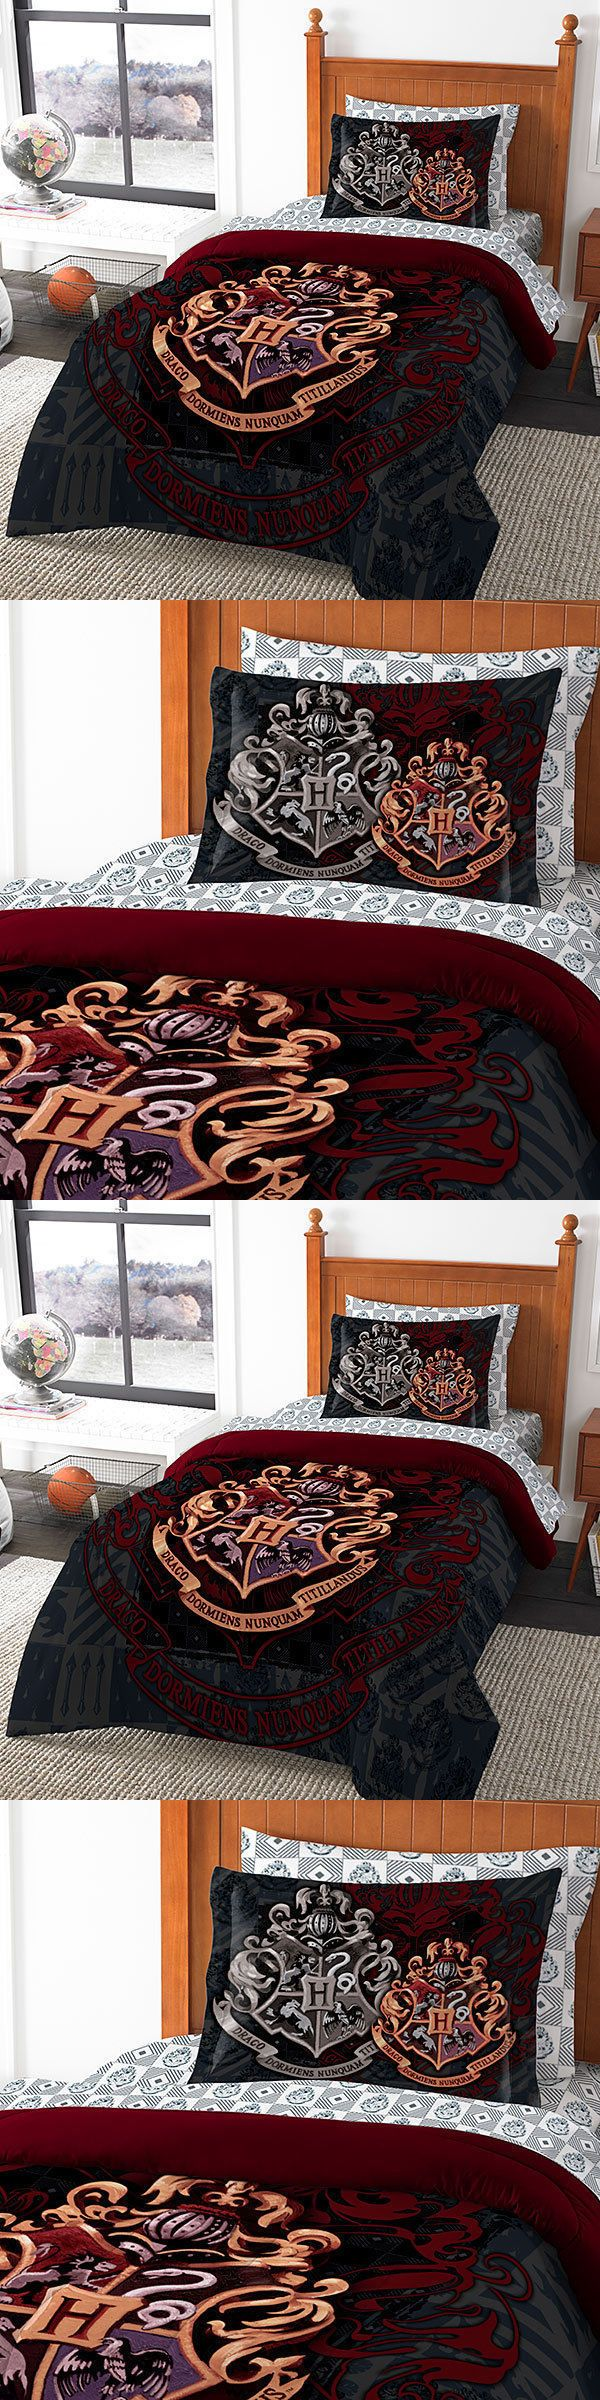 Other Bedding 25815: Harry Potter Hogwarts 7 Pc Bed Set Comforter Flat Fitted Sheet Pillowcases Shams -> BUY IT NOW ONLY: $152.5 on eBay!